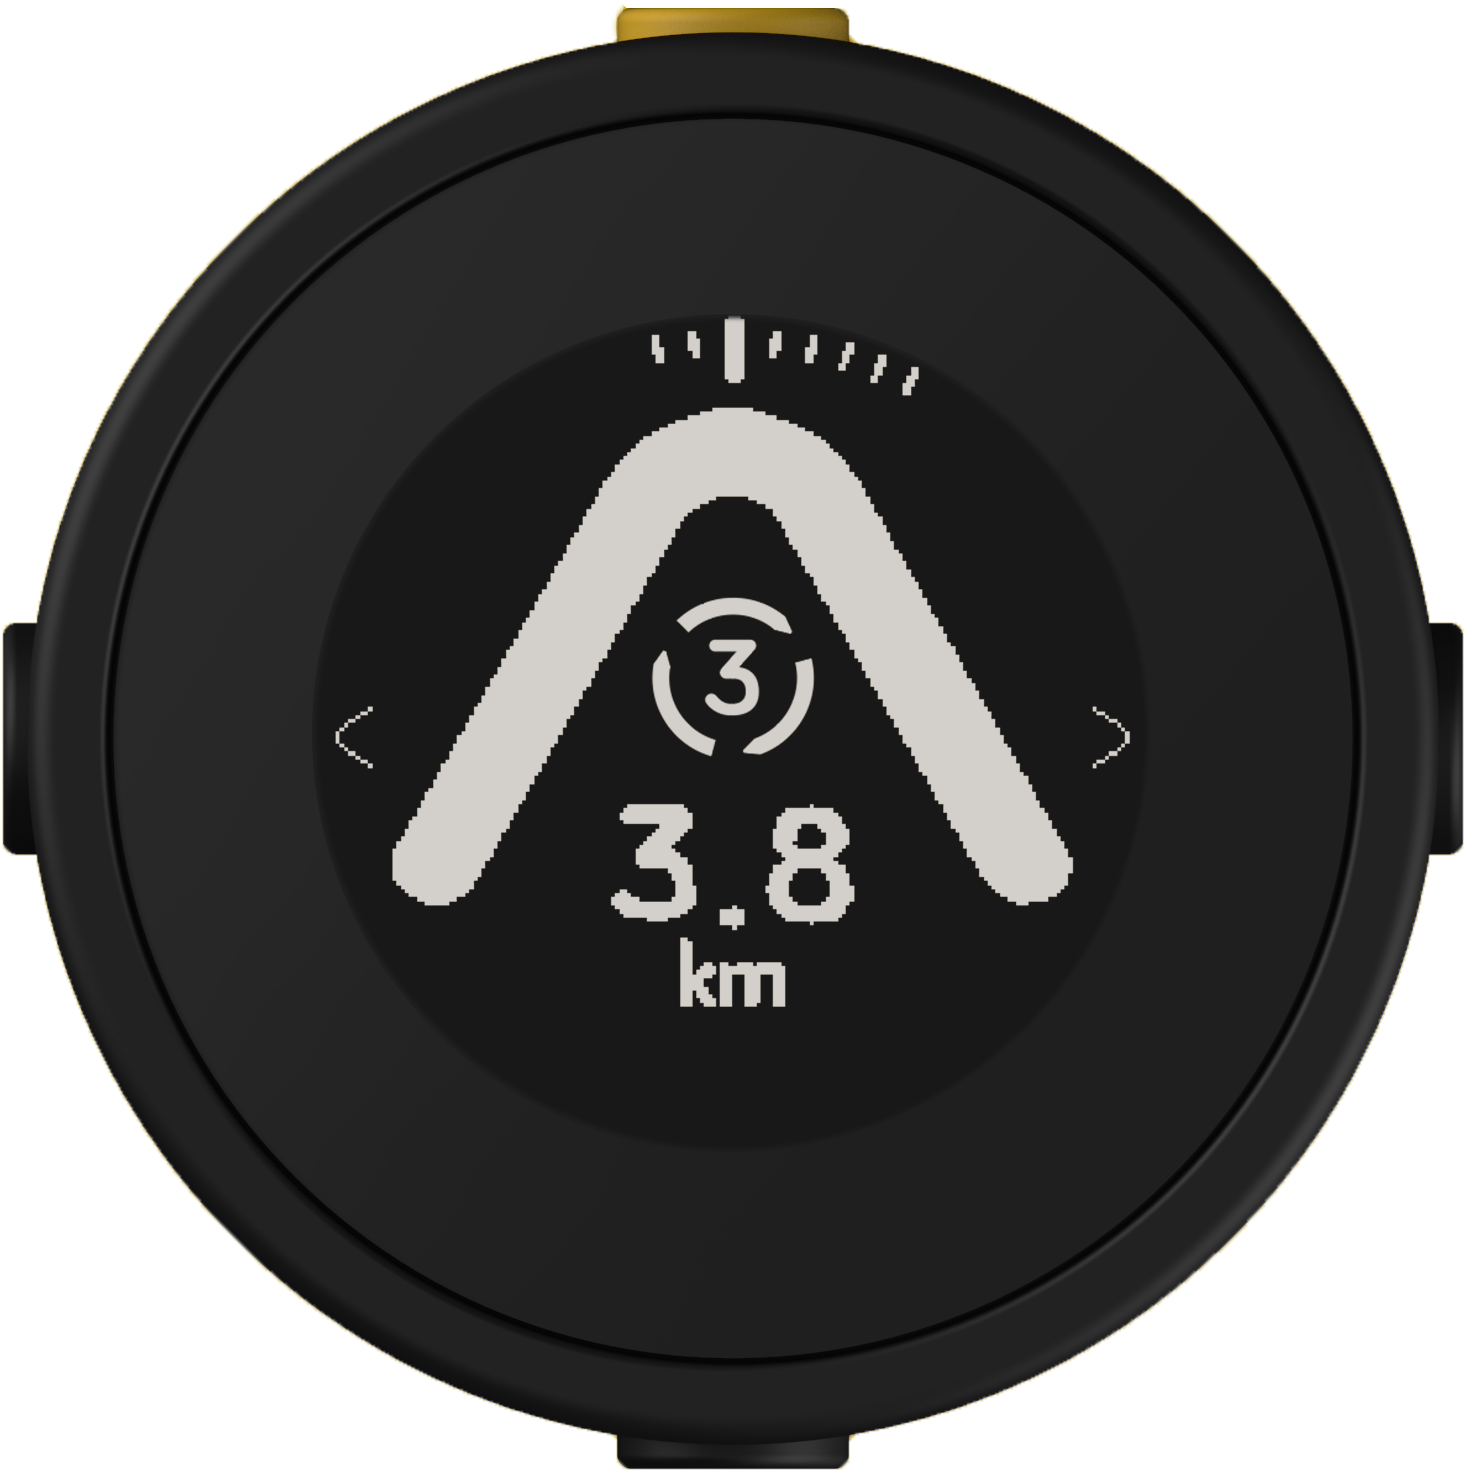 Beeline Moto with a roundabout indicator to take the 3rd exit